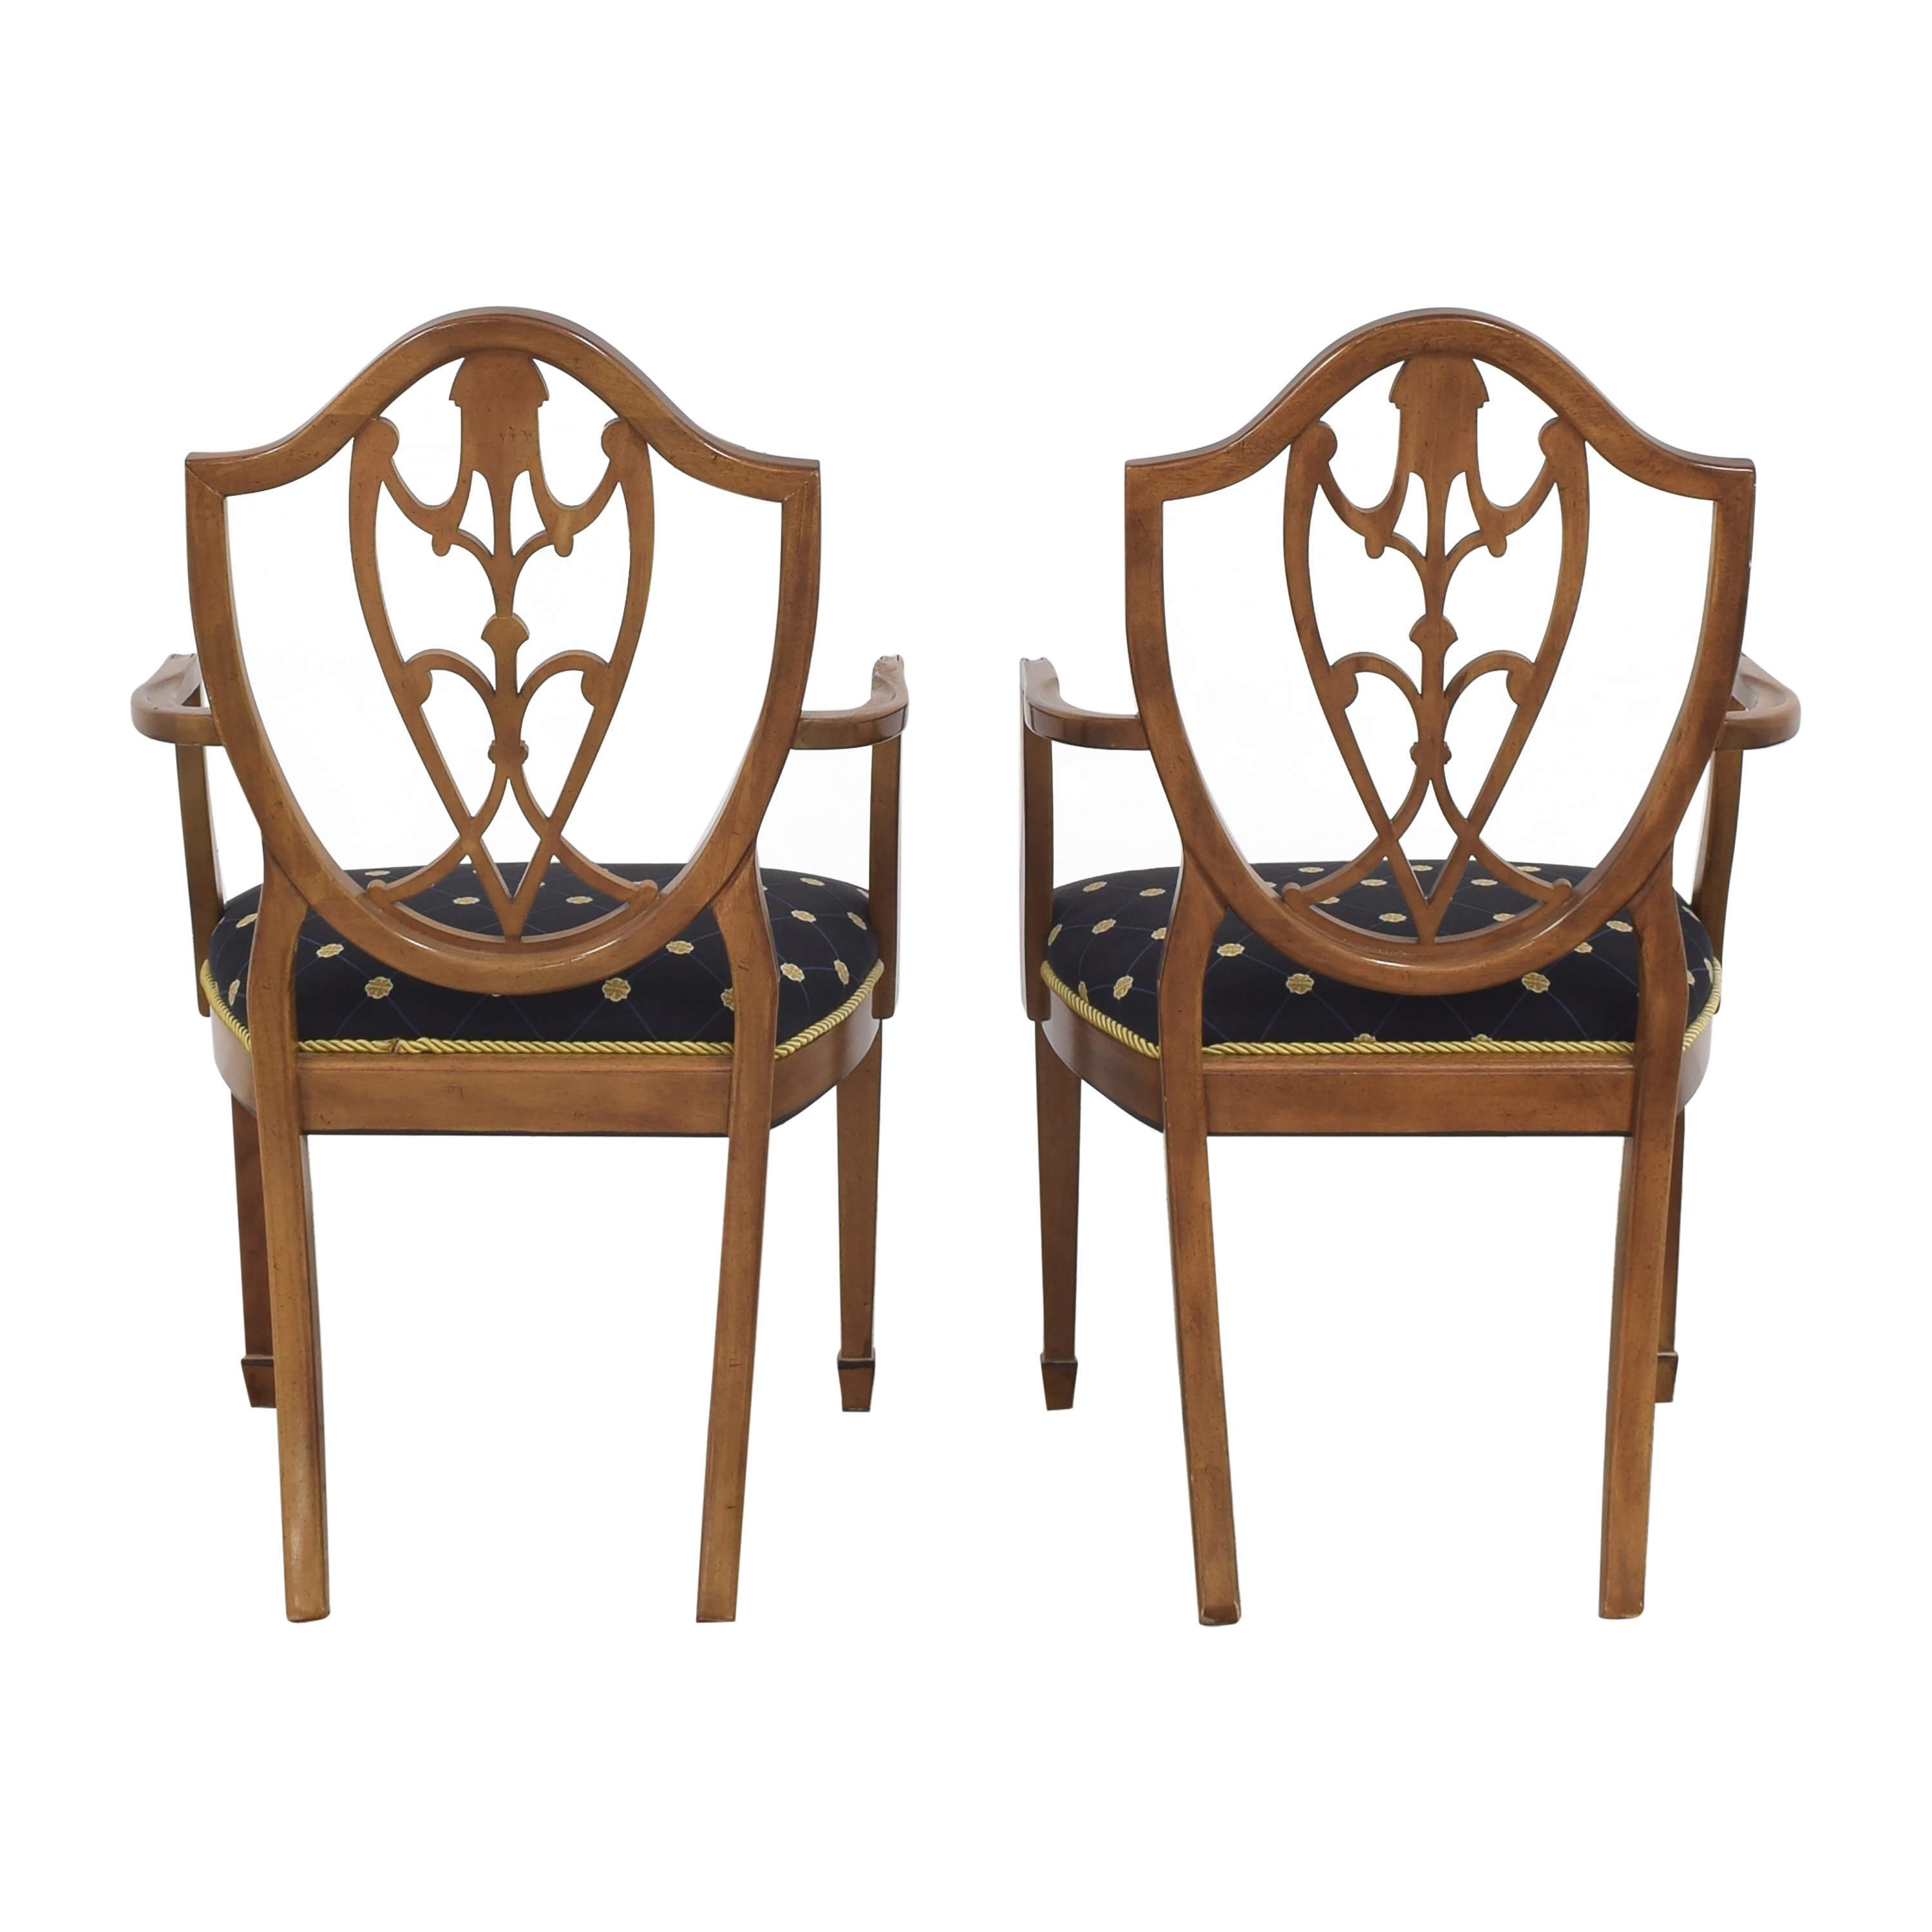 Drexel Upholstered Dining Arm Chairs Drexel